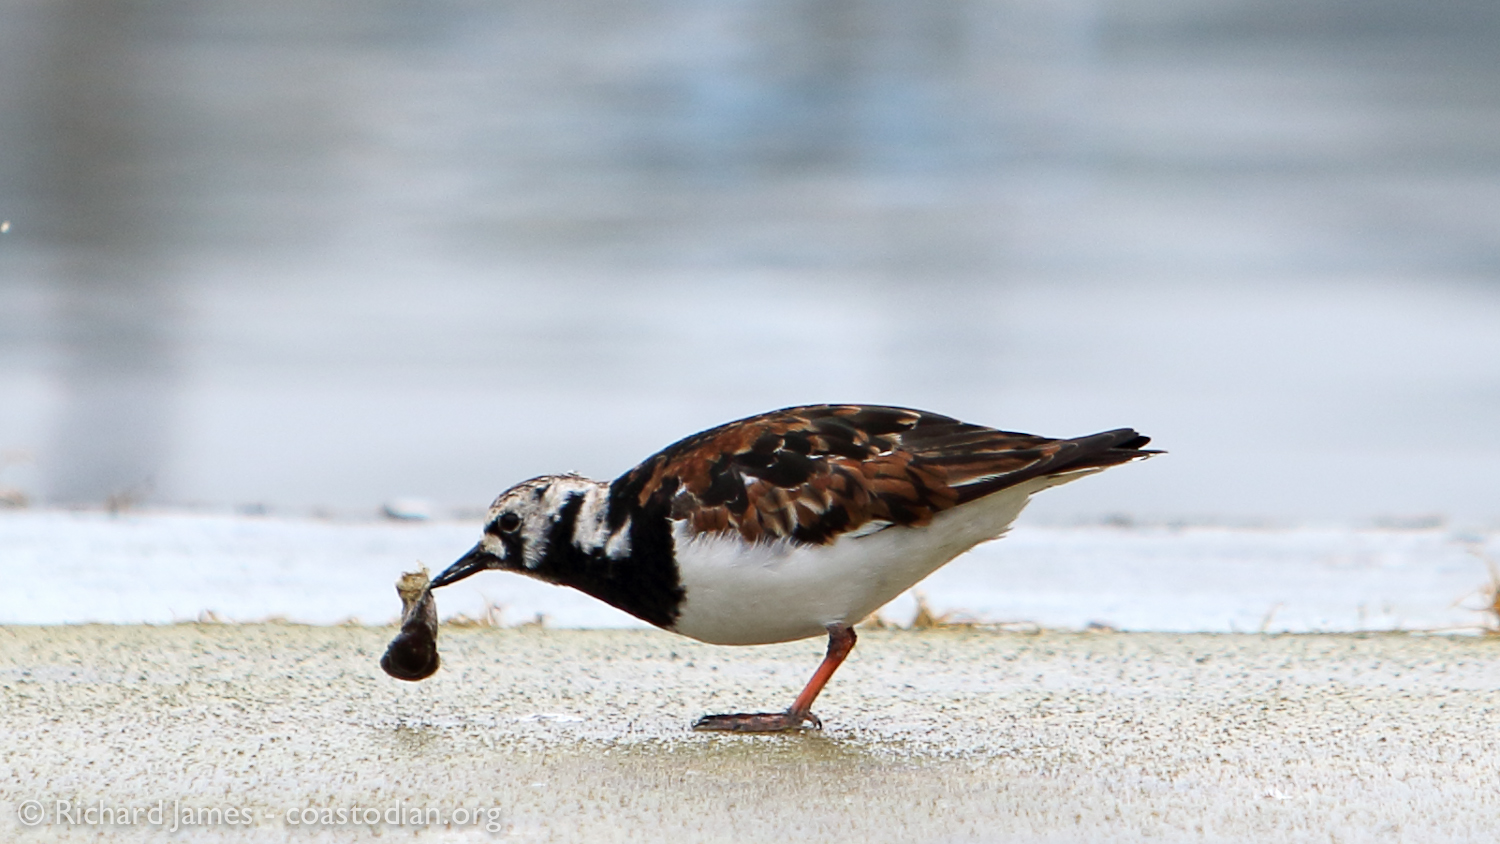 Ruddy Turnstone in Bodega Bay feasting on a crab leg - first one I have seen. ©Richard James - coastodian.org